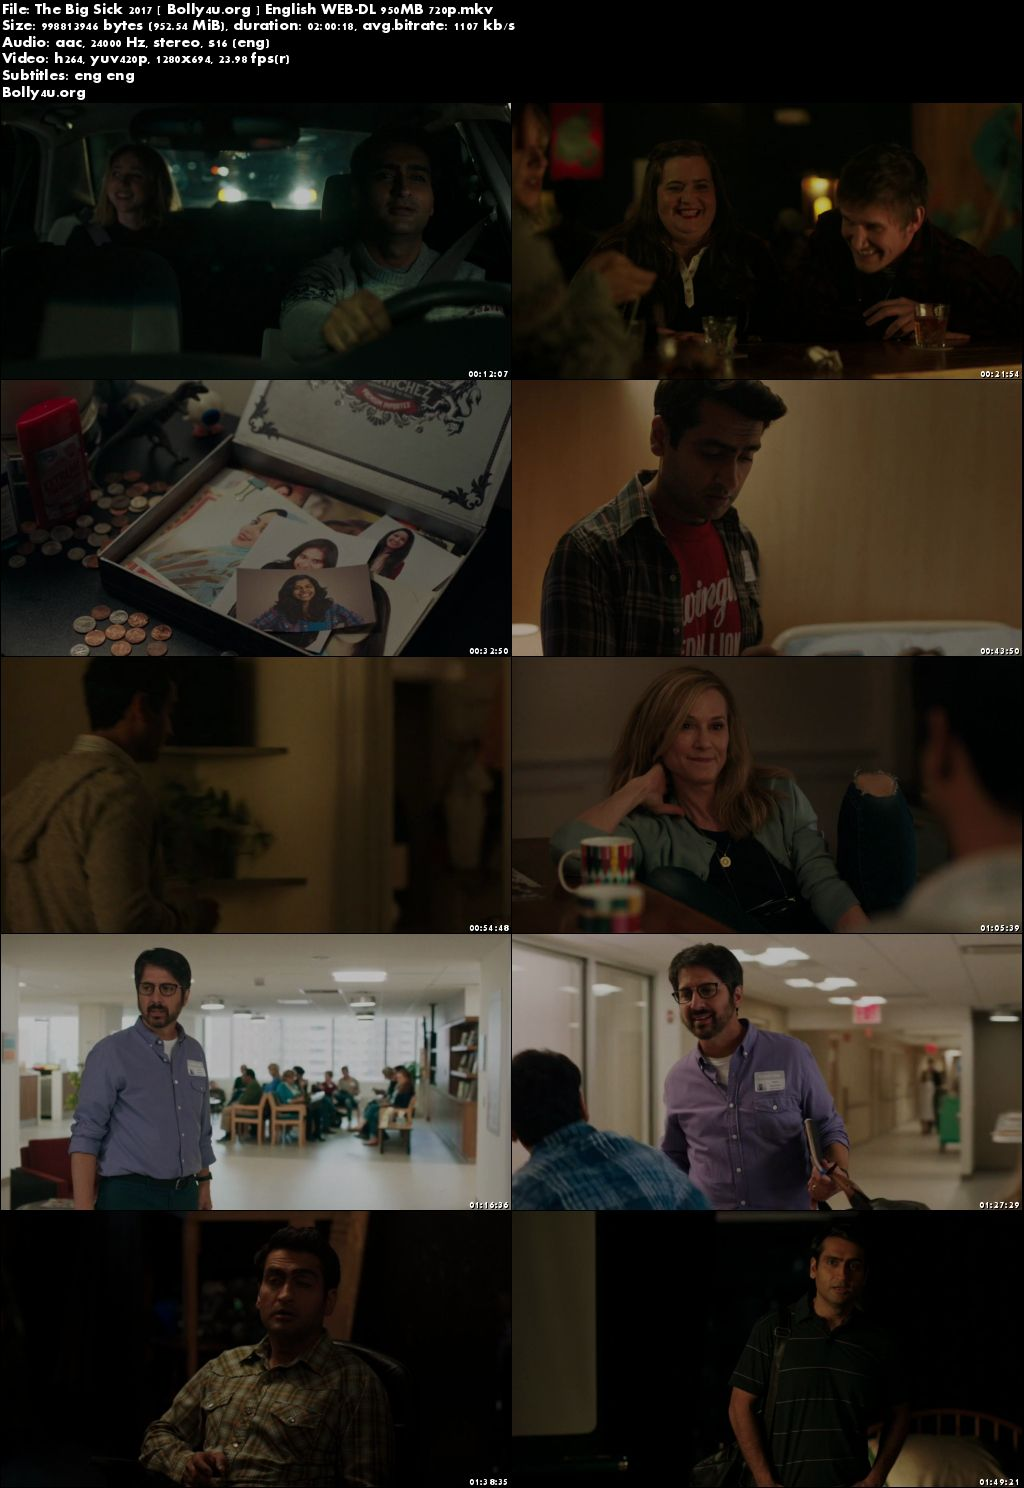 The Big Sick 2017 WEB-DL 950MB English Movie 720p ESubs Download